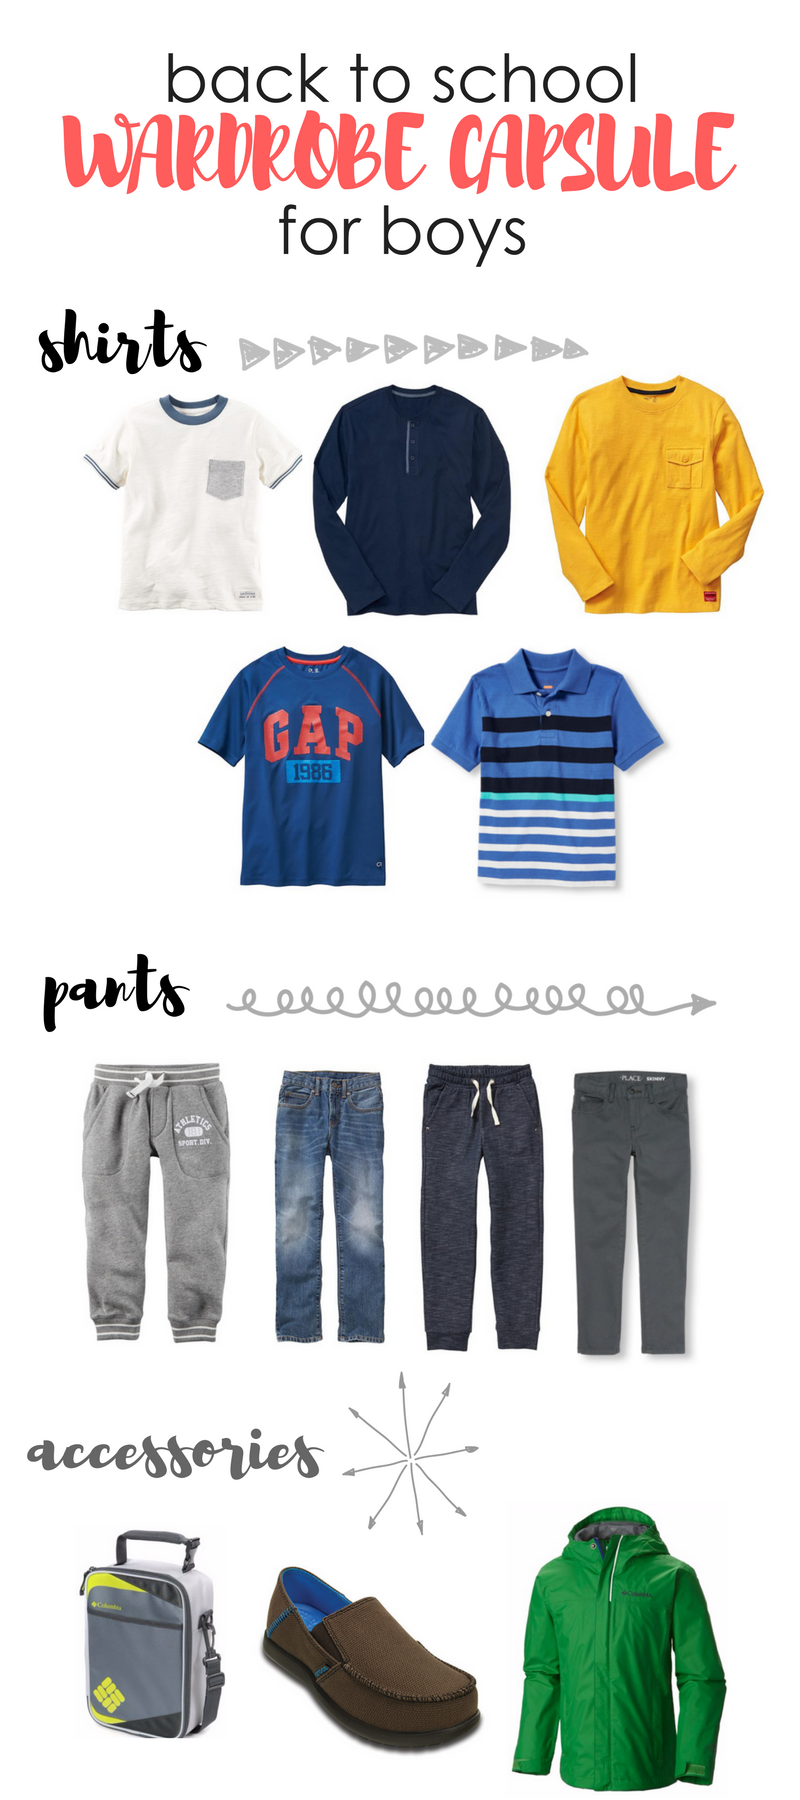 back to school wardrobe capsule for boys